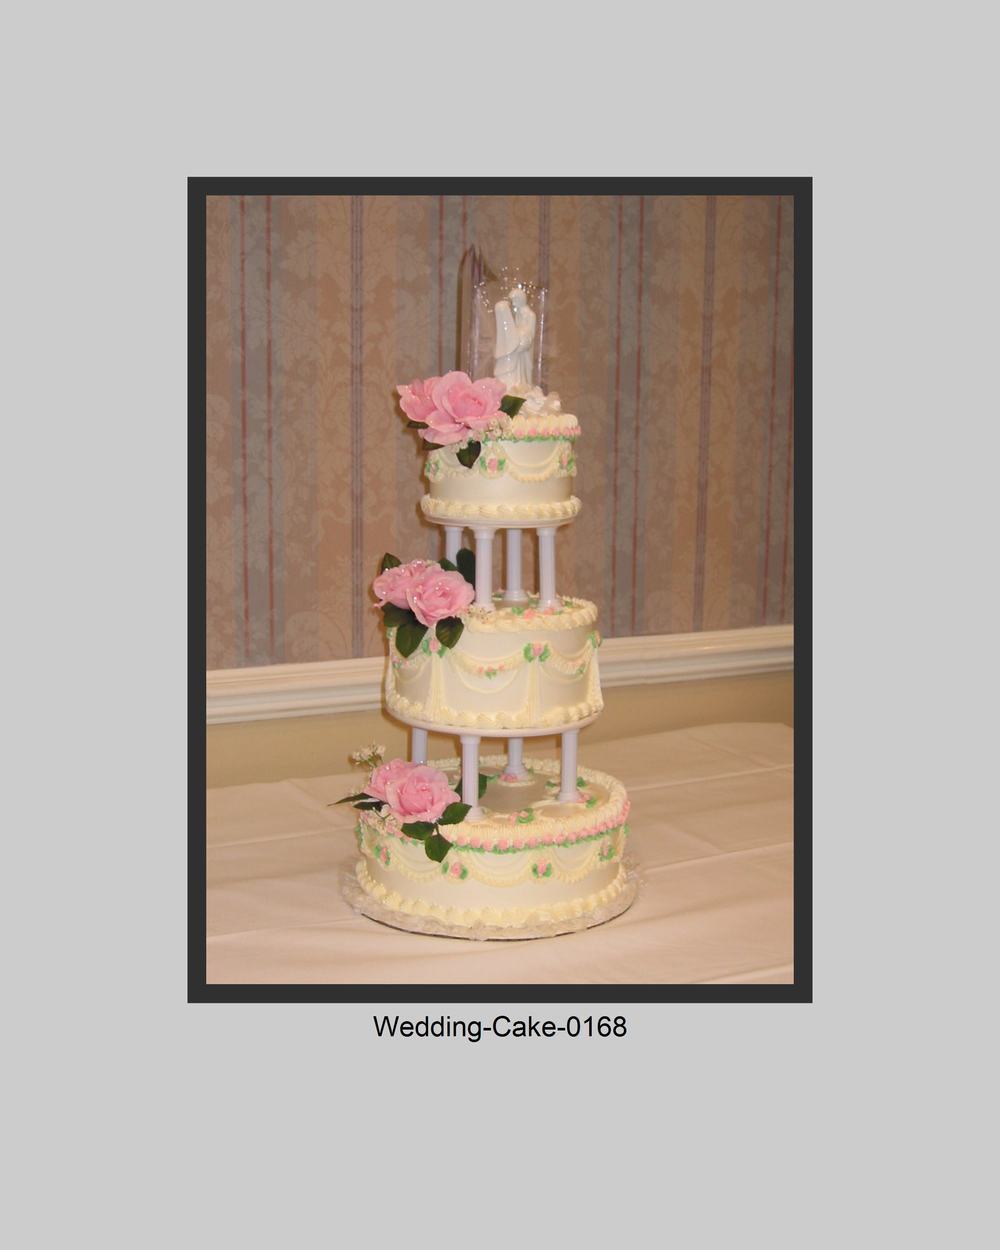 Wedding-Cake-Prints-0168.jpg